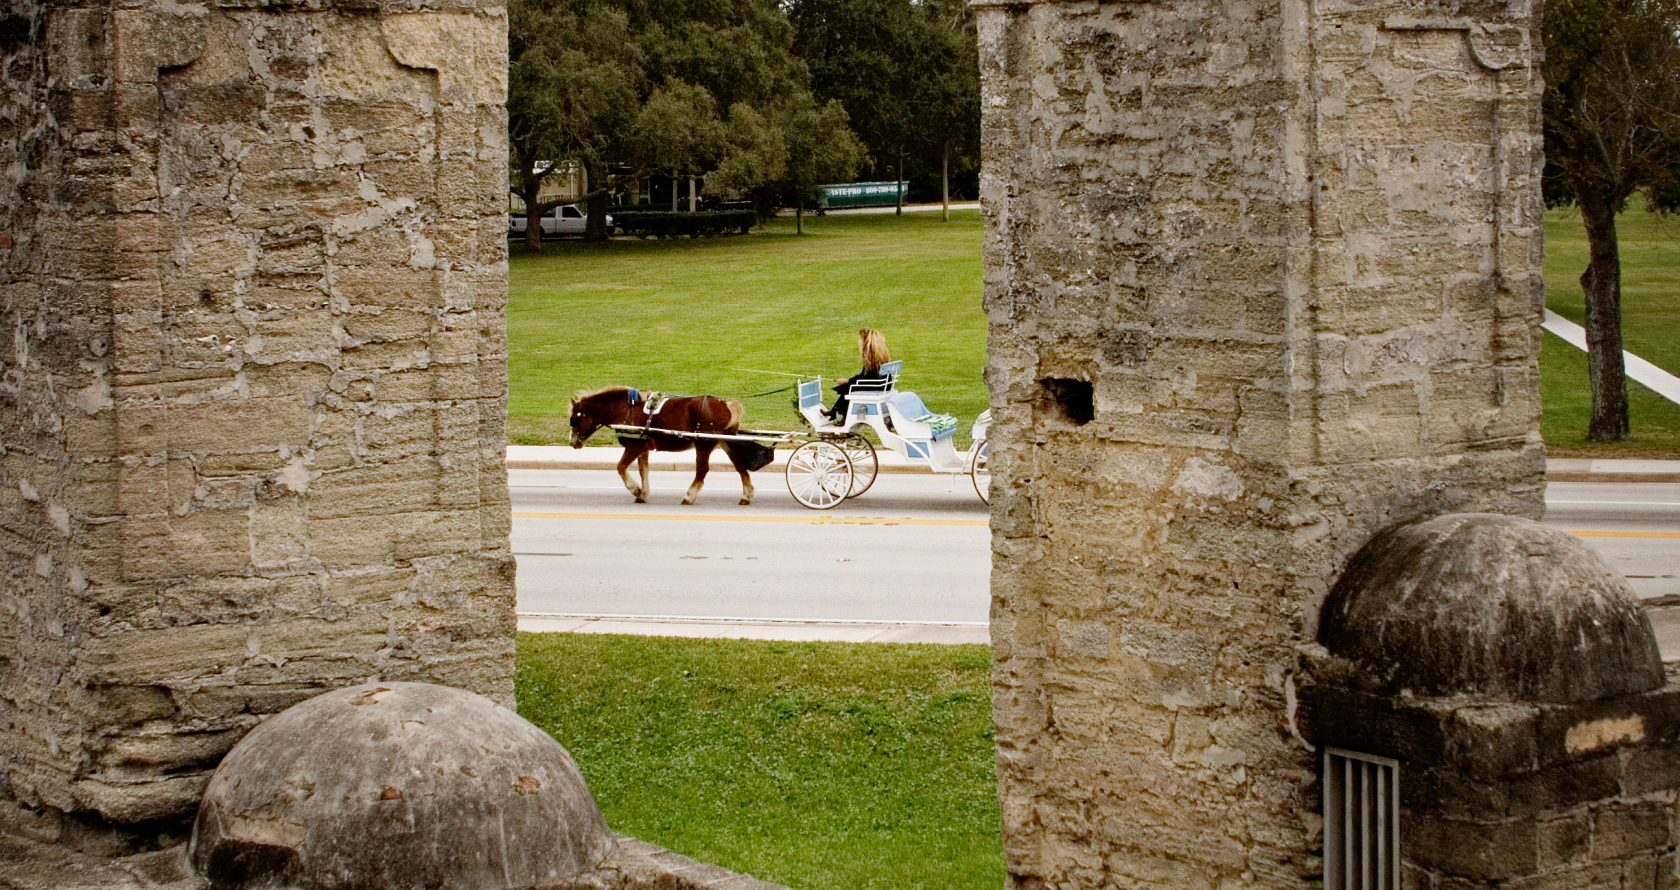 View of Horse and Buggy and the Old City Gates